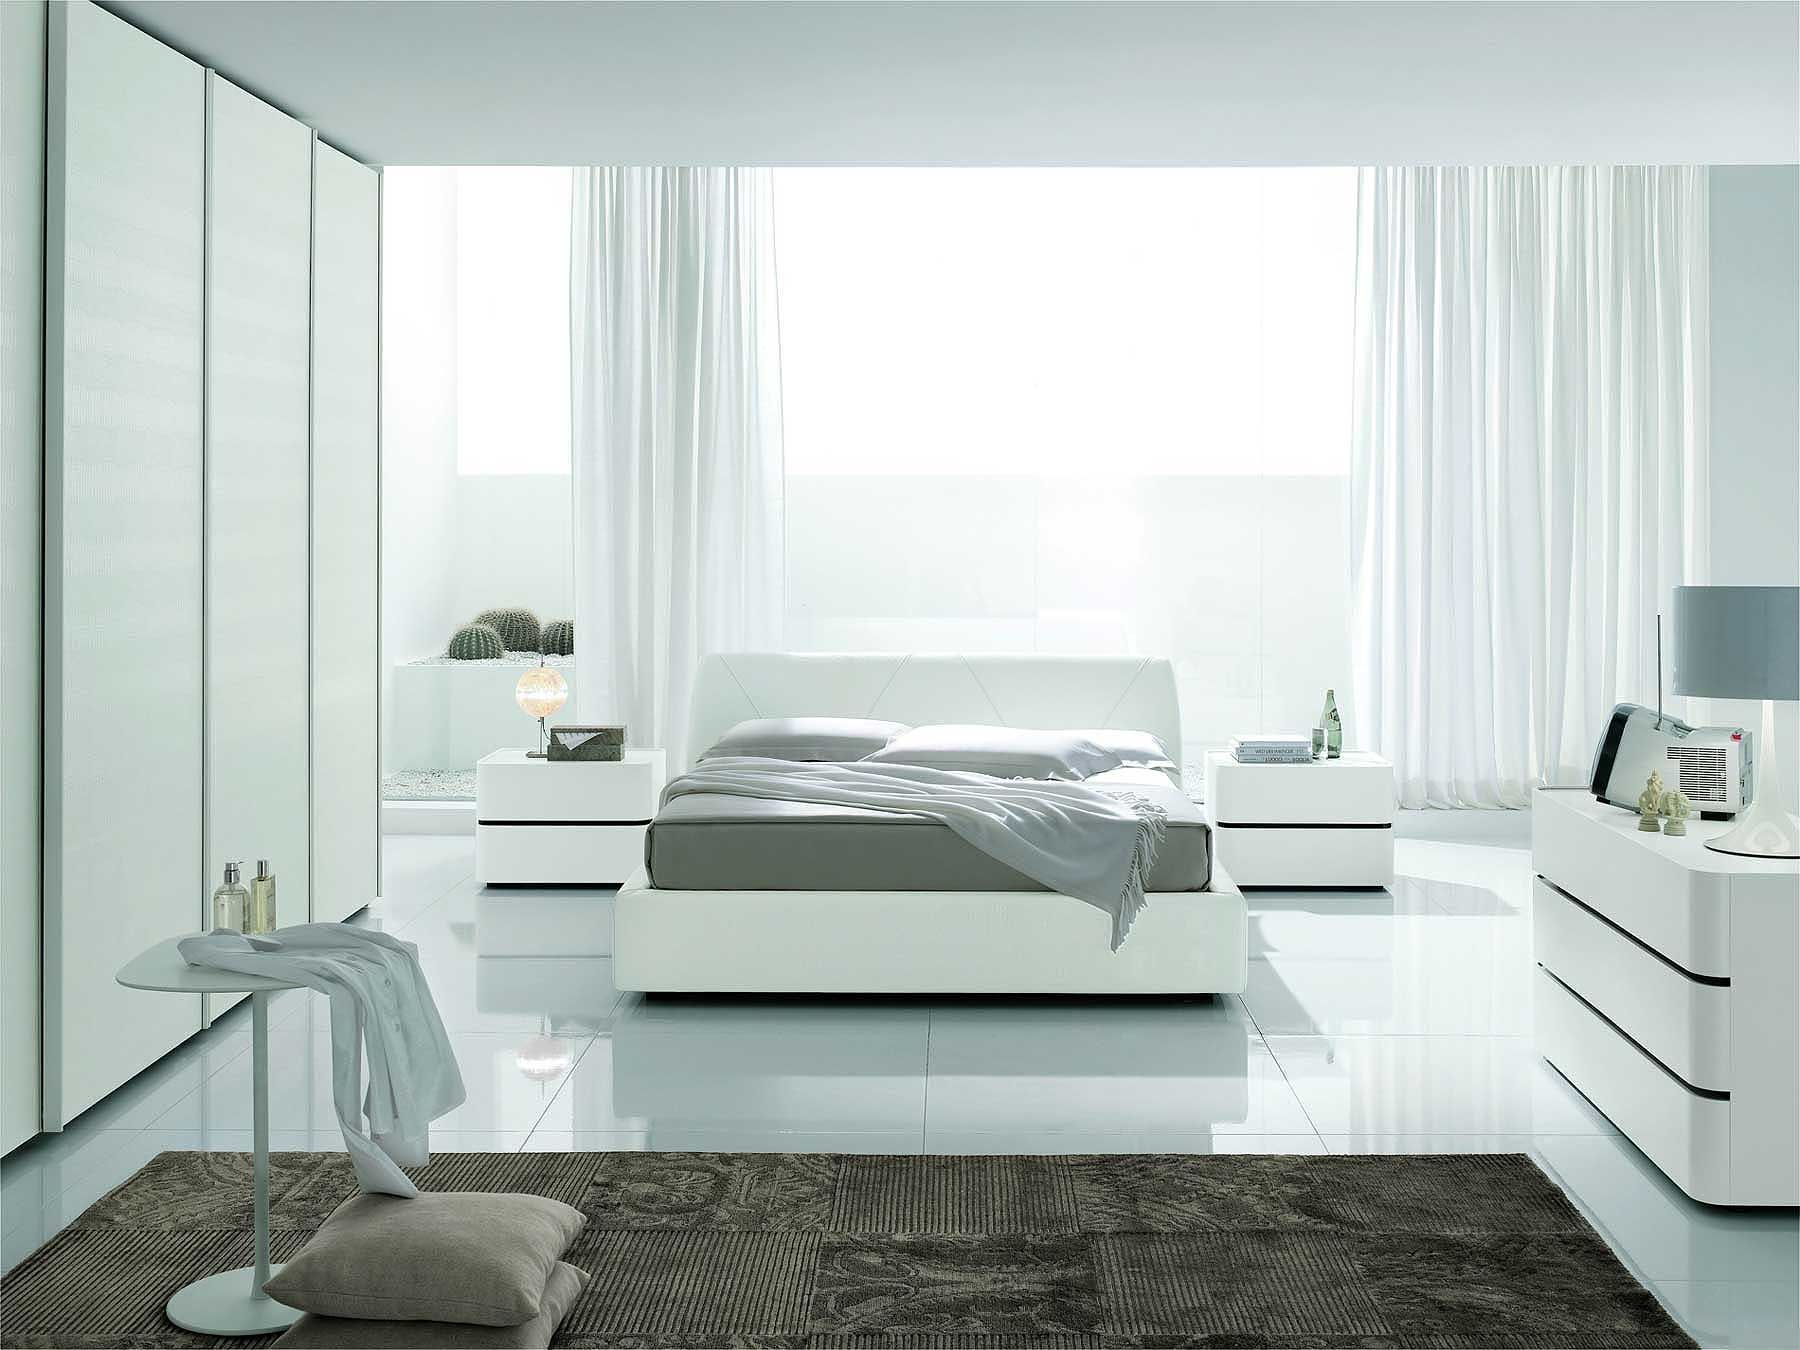 Contemporary Interior Design 1 Ikea Bedroom Design Bedroom Furniture Design White Bedroom Design